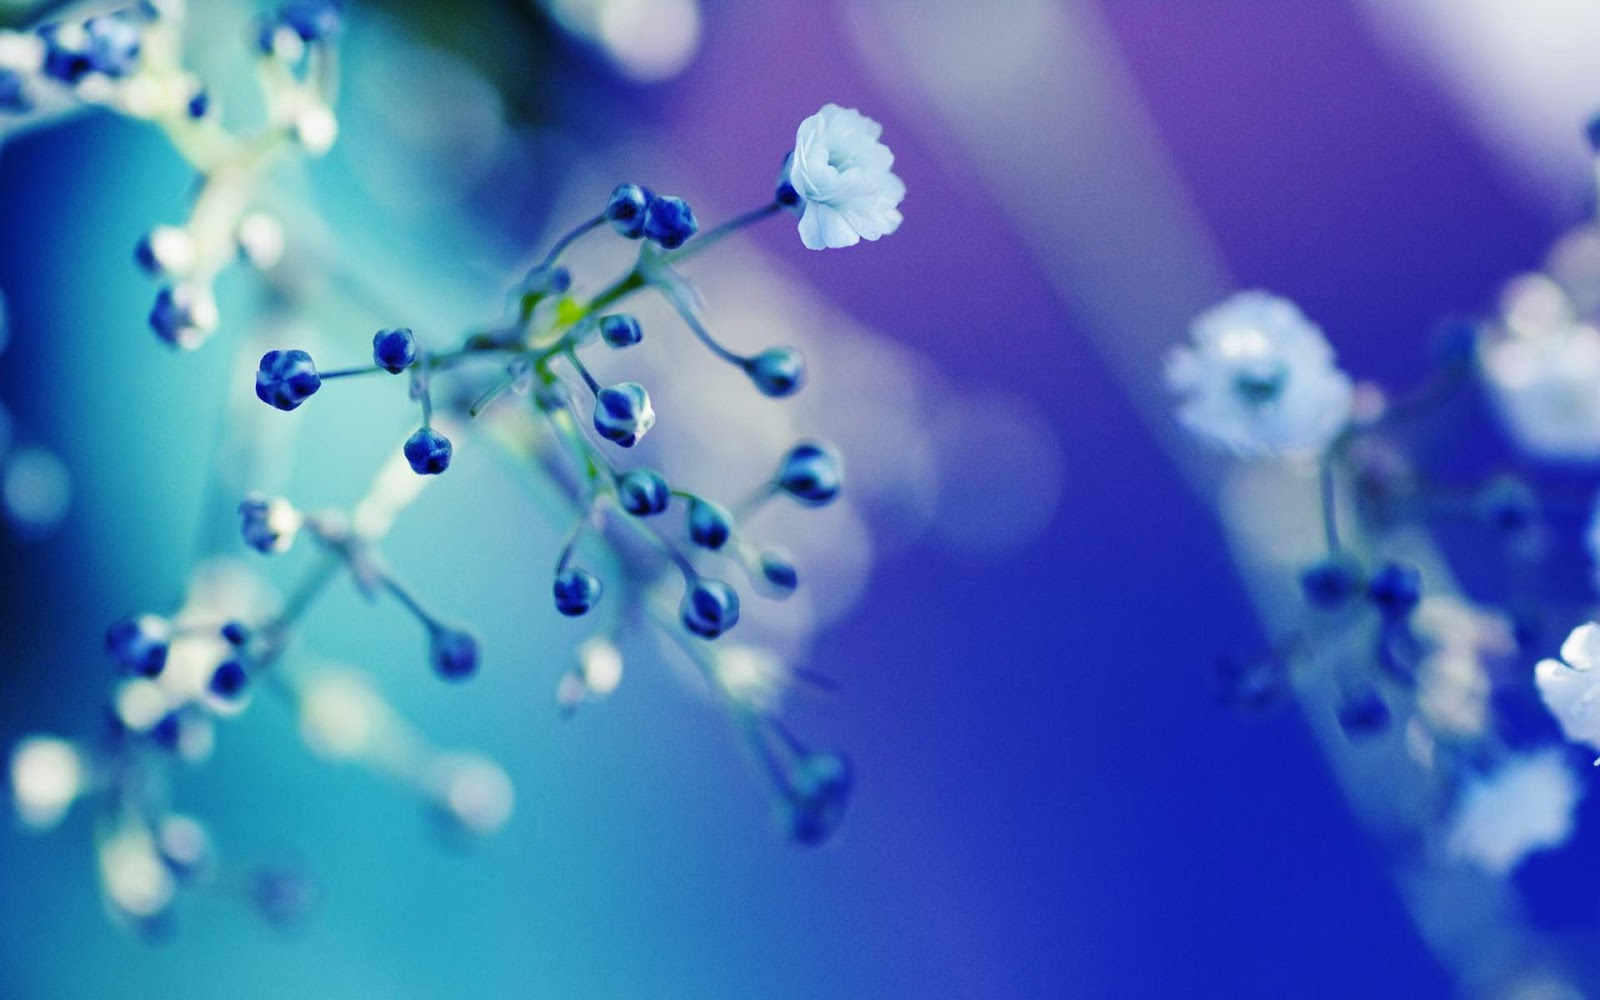 Free Download Blue White Flower Close Up Wallpaper Hd High